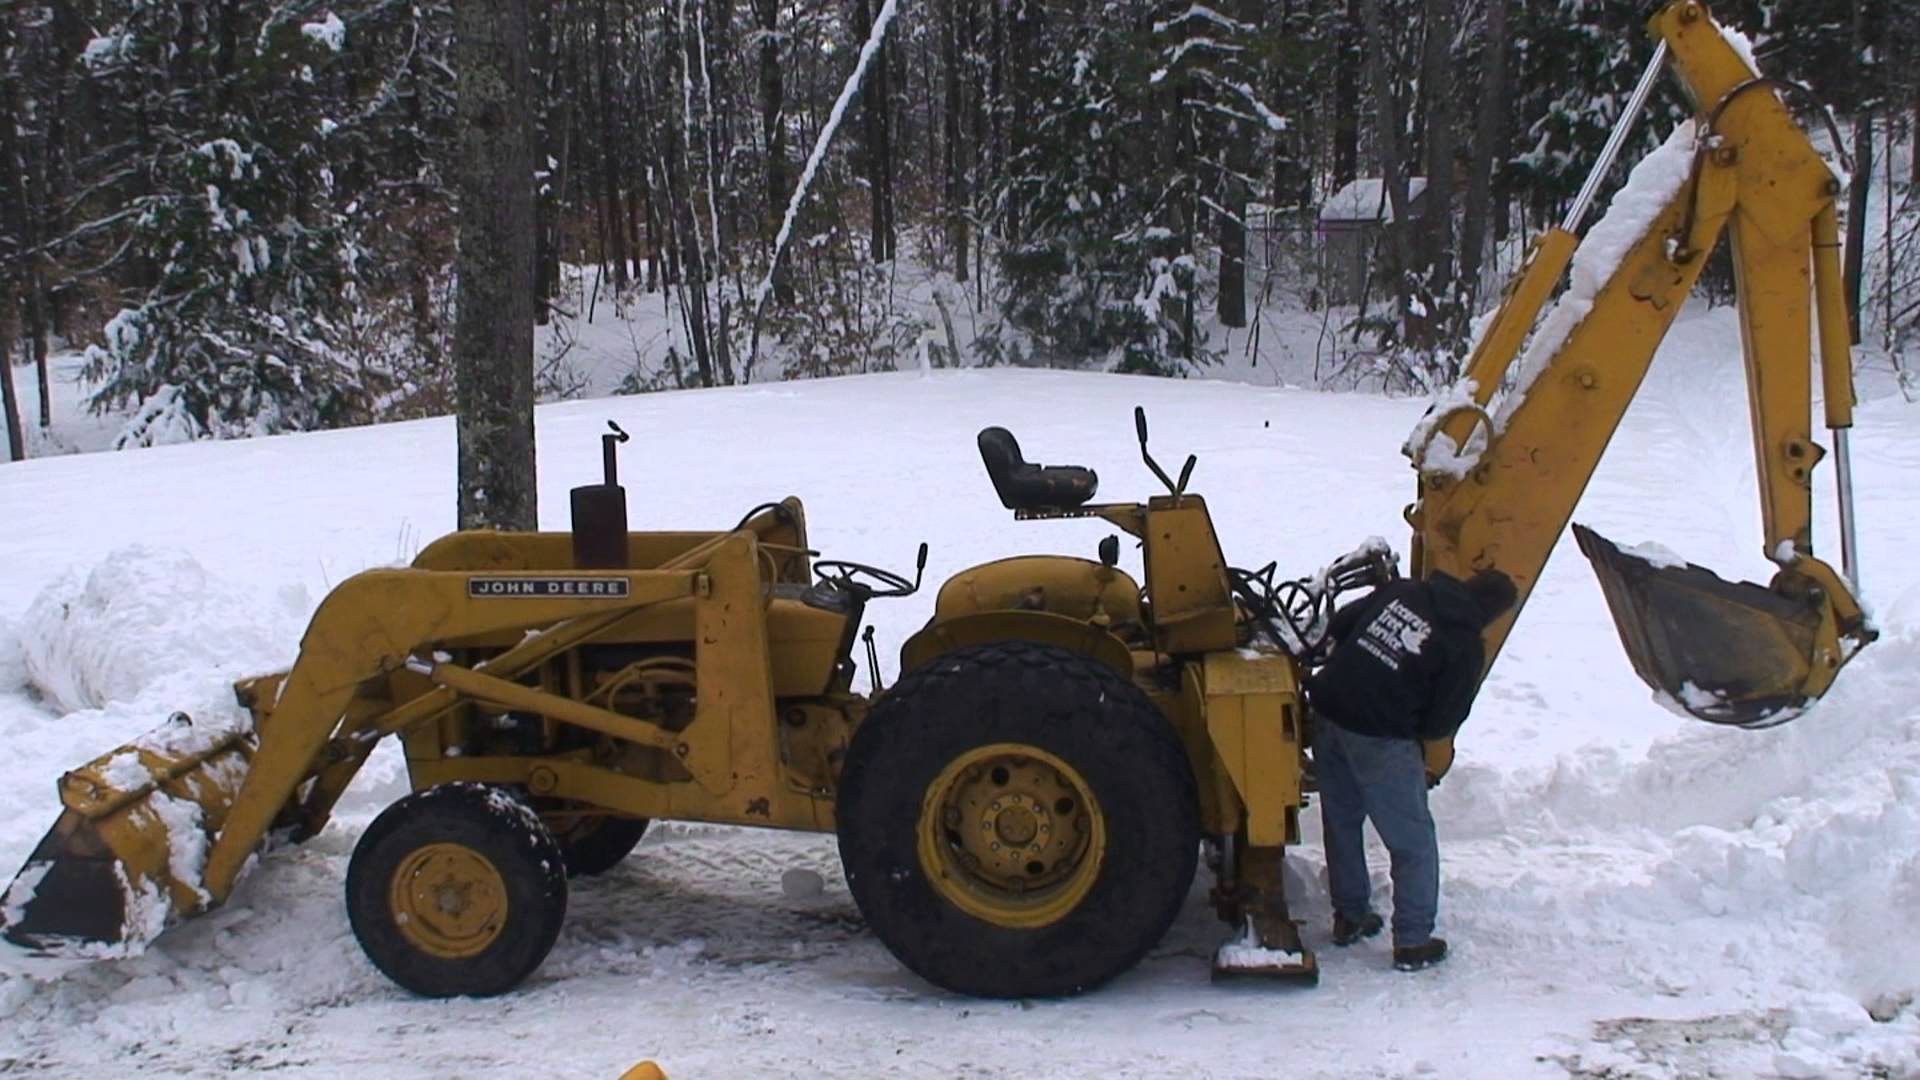 1970 John Deere JD400 Tractor Loader Backhoe - YouTube